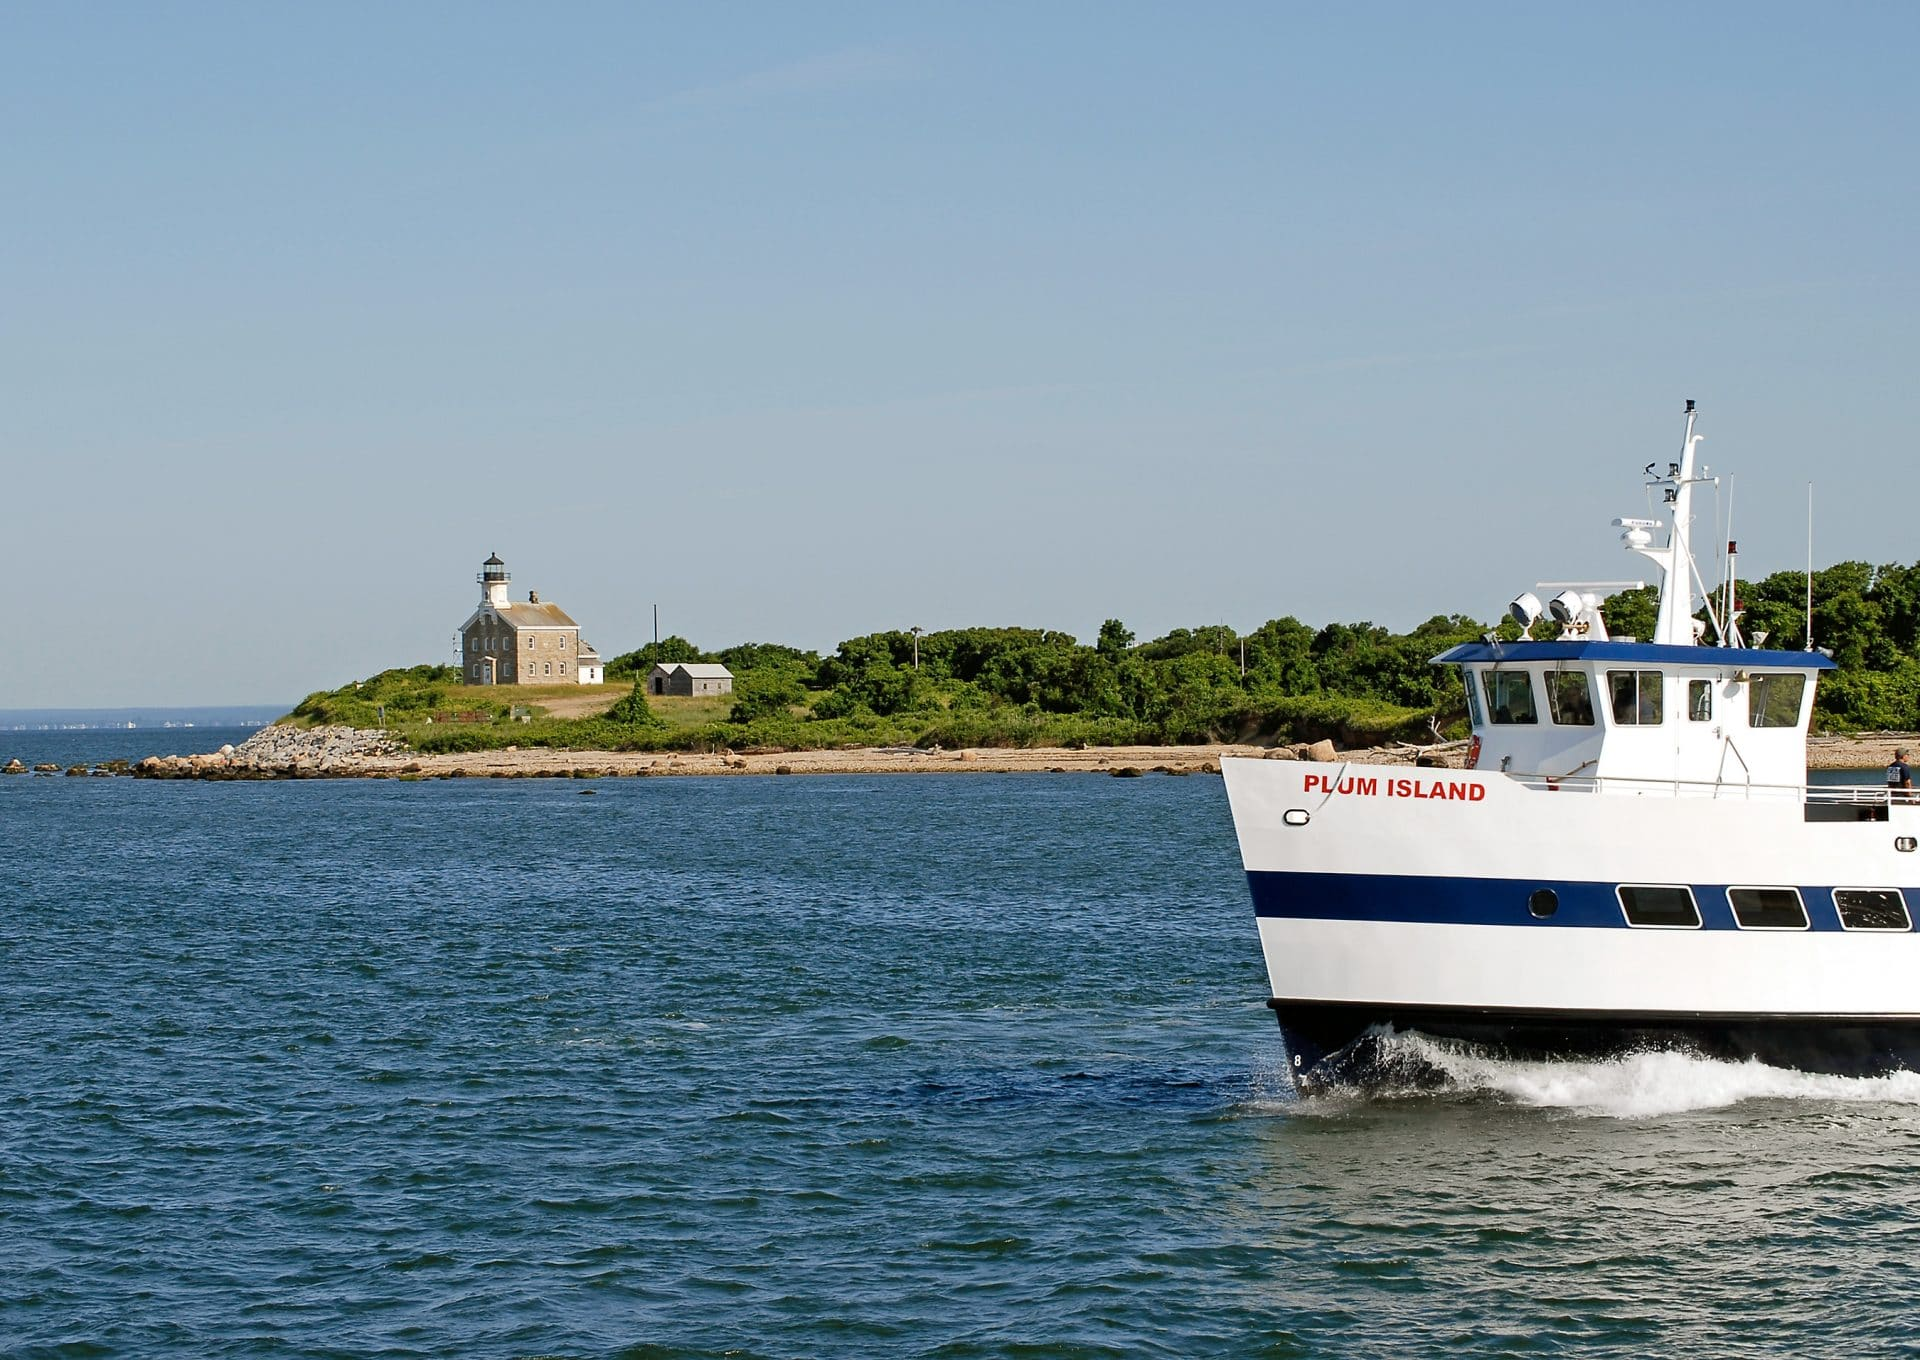 "Ferries bring researchers and staff to and from Plum Island several times each day. Photo by <a href=""https://www.ars.usda.gov/oc/images/photos/oct13/d2996-1/"">USDA</a> / Kathleen Apicelli"